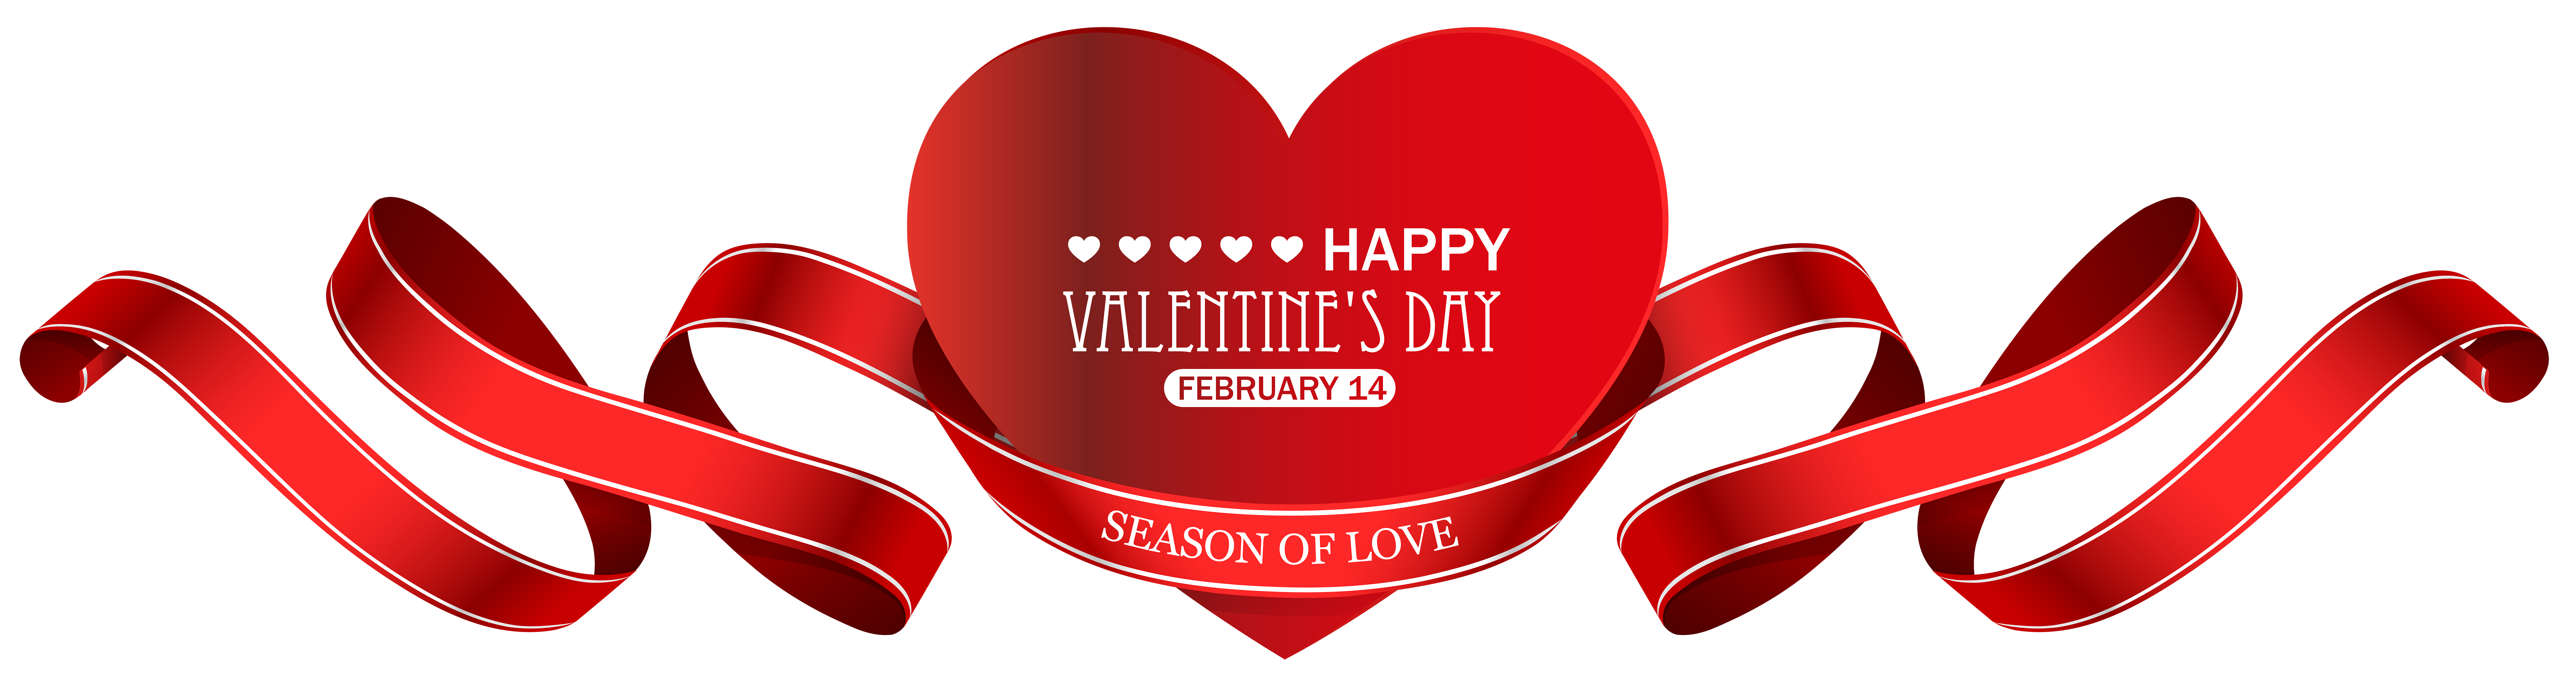 February clipart valentine. S day red heart